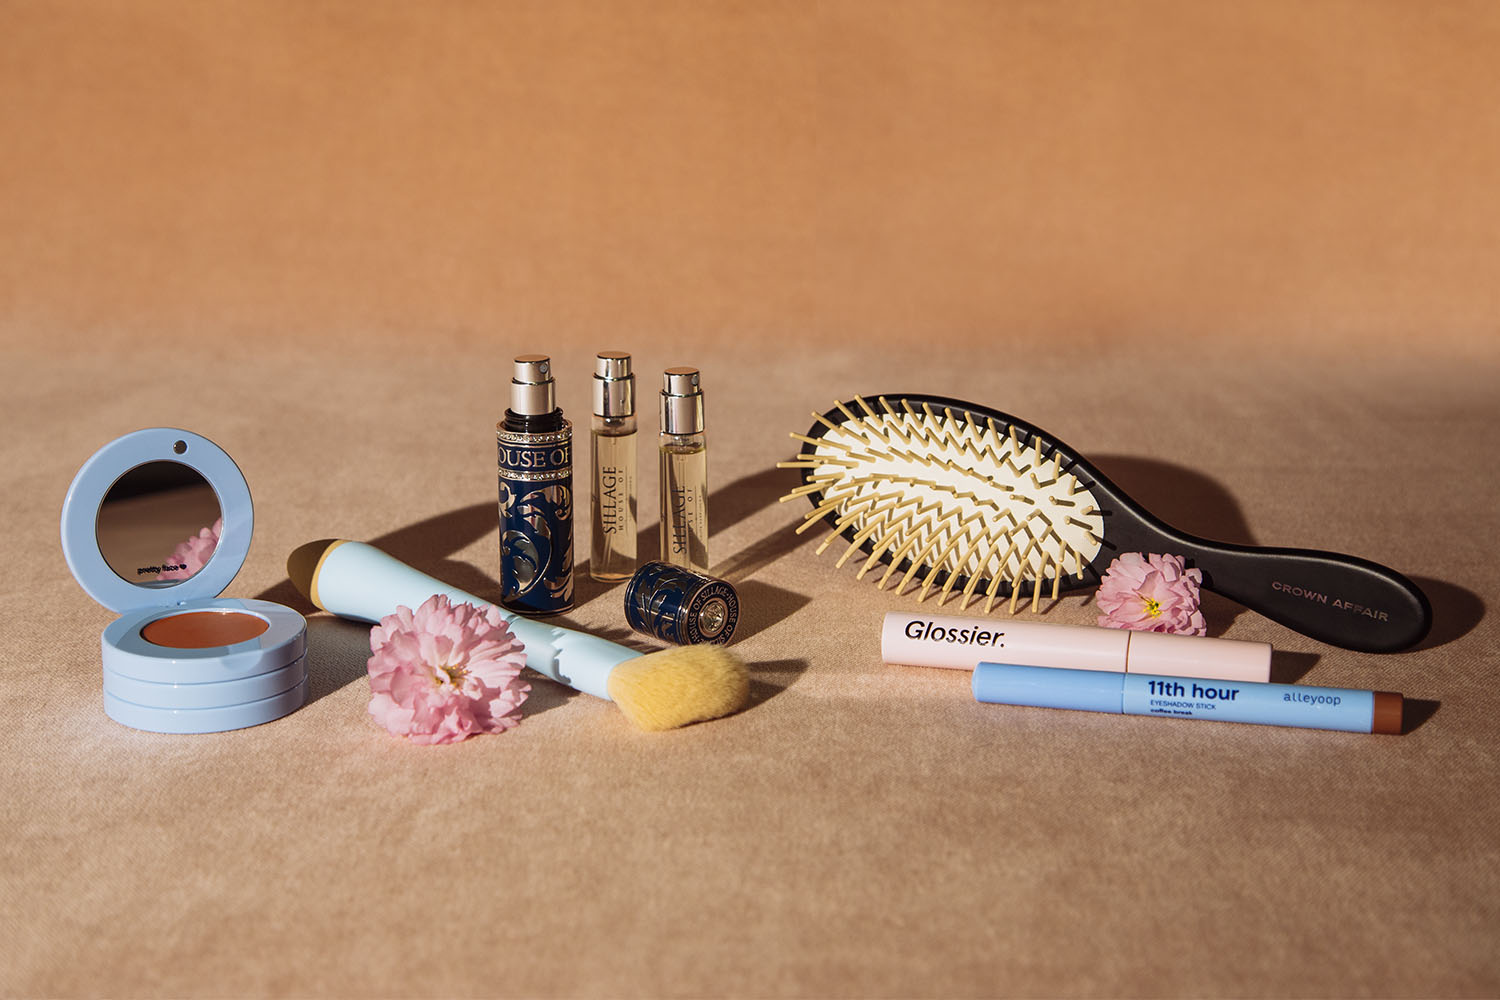 assorted makeup, perfume, brush and applicators for mothers day